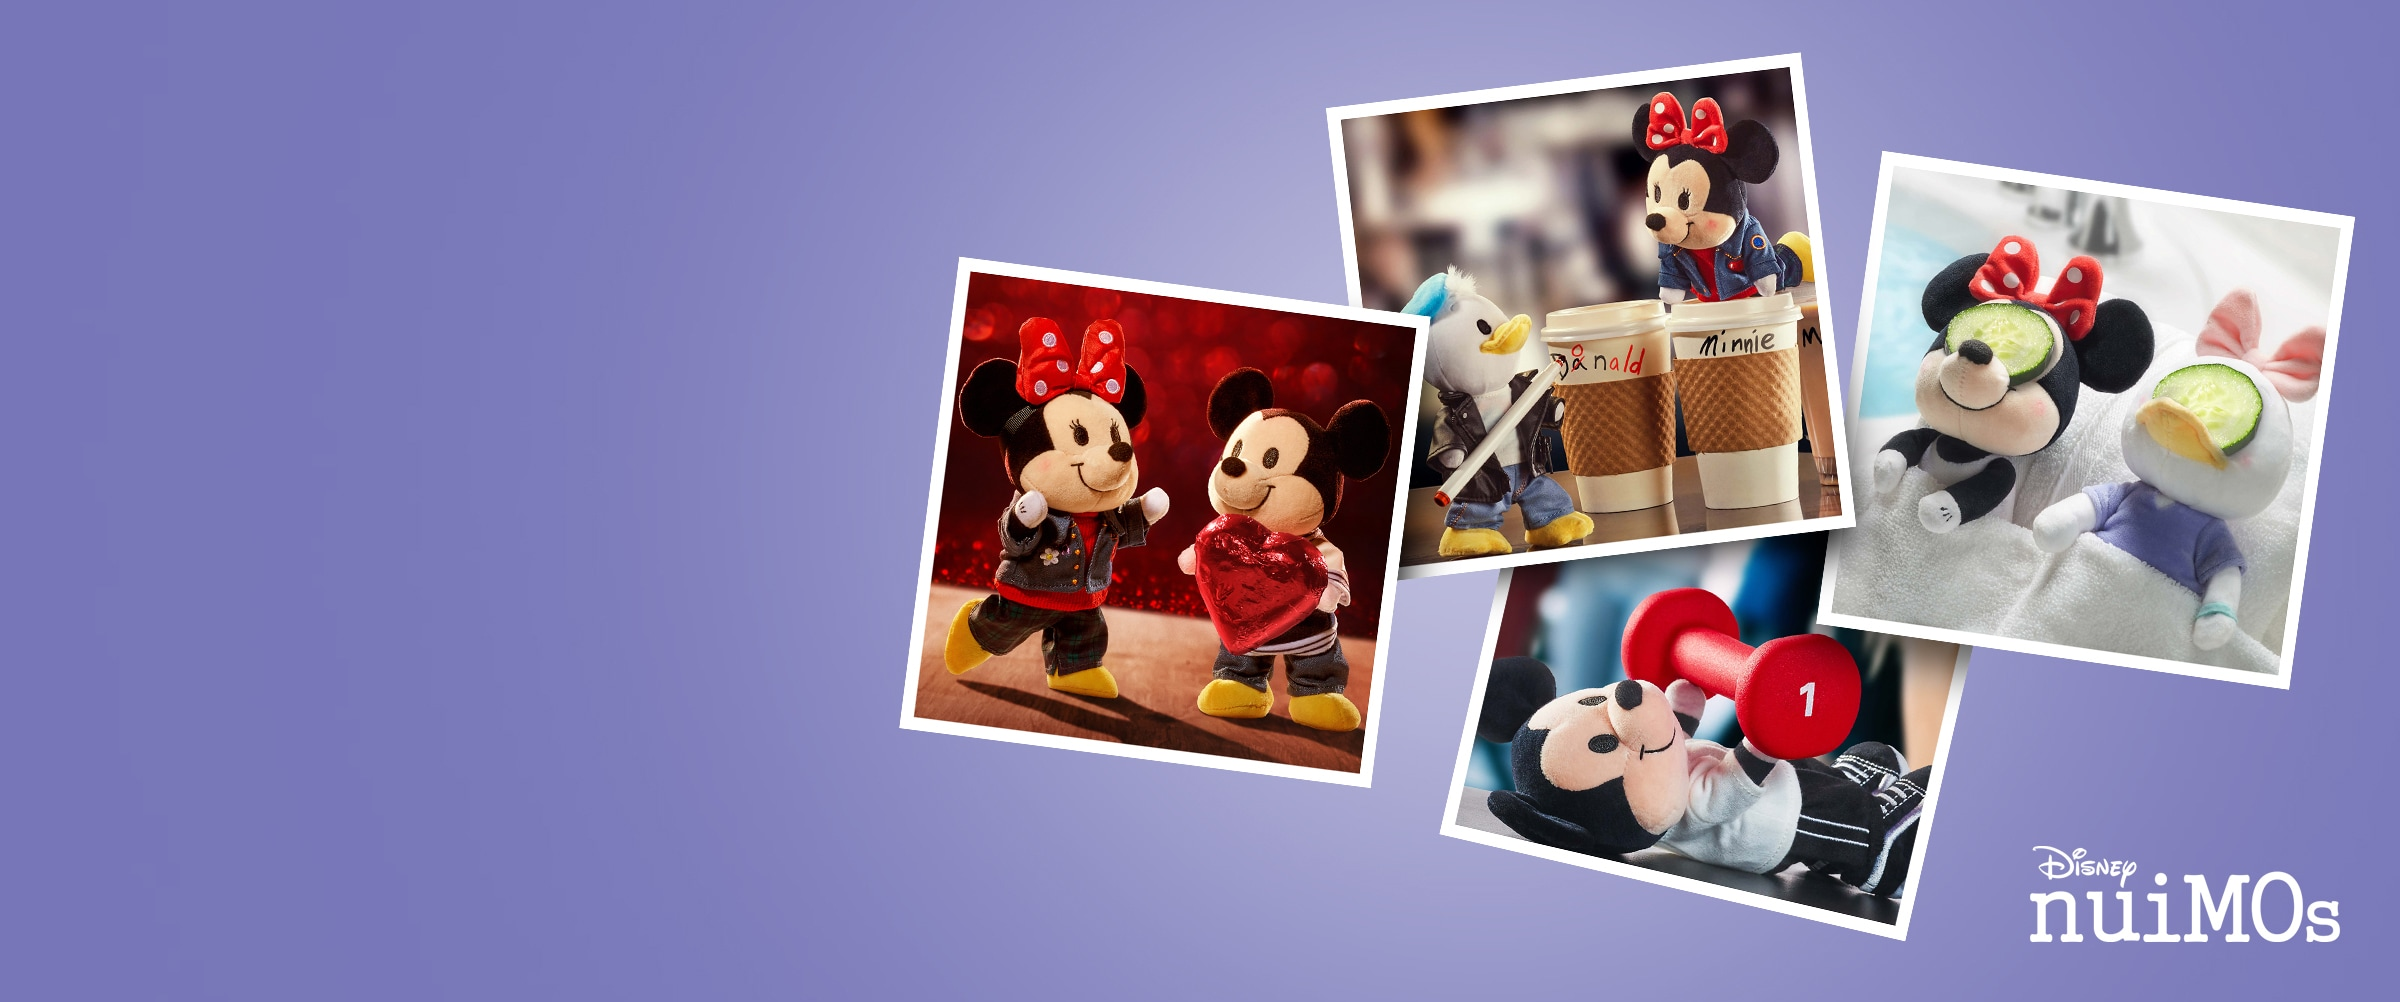 Disney nuiMOs | shopDisney | Mickey Franchise | Polaroid